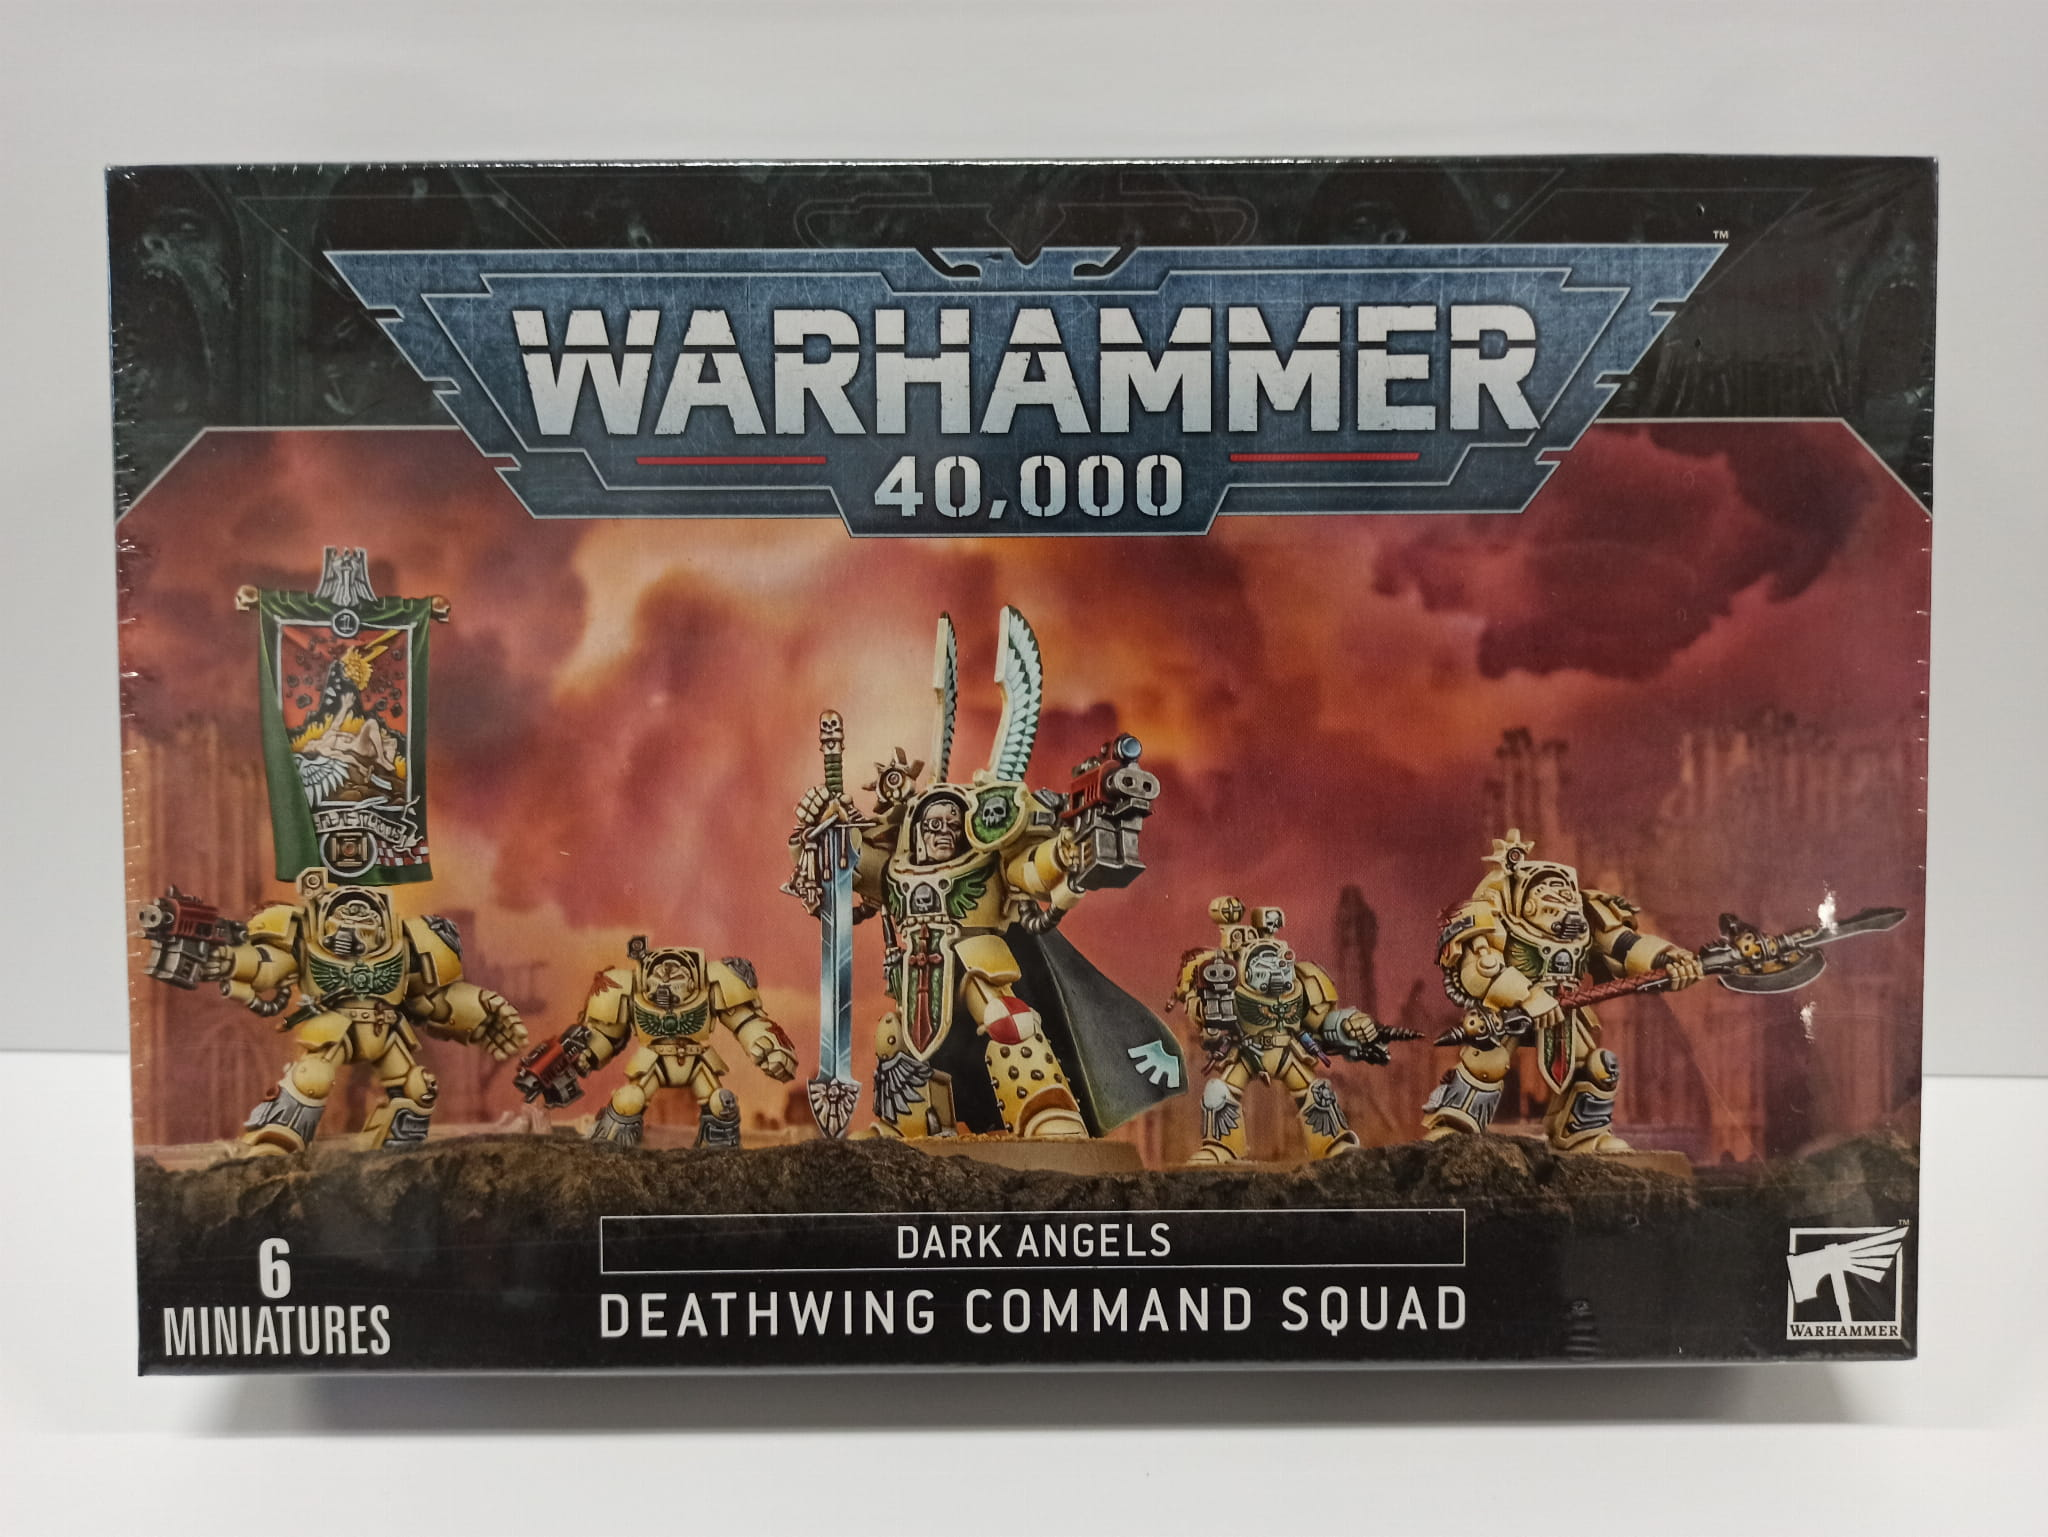 Warhammer 40,000: Dark Angels Deathwing Command Squad (9th edition)